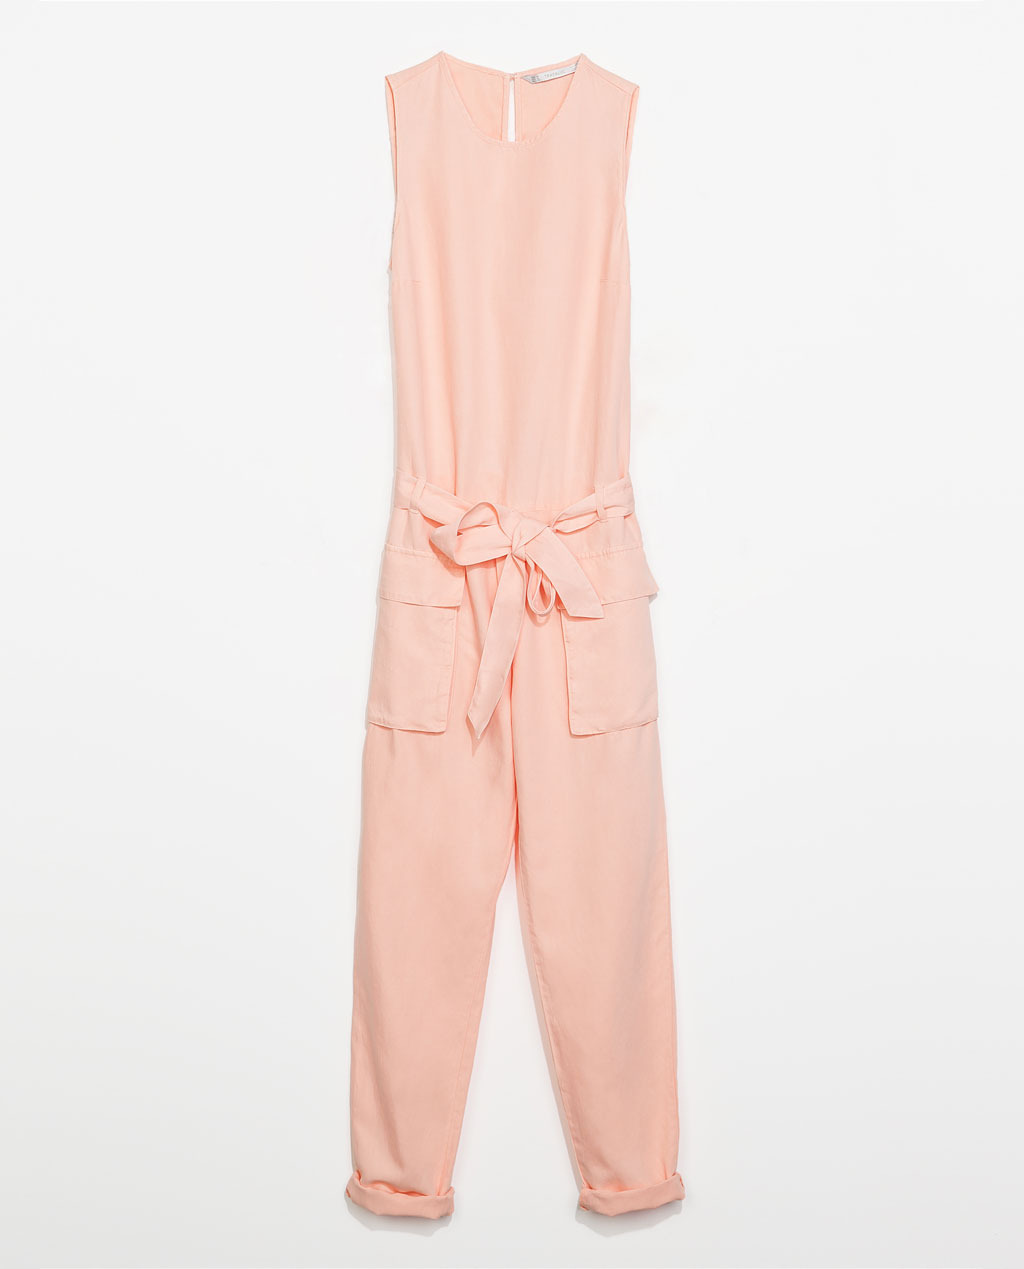 Sleeveless Jumpsuit - neckline: round neck; pattern: plain; sleeve style: sleeveless; waist detail: belted waist/tie at waist/drawstring; predominant colour: nude; occasions: casual, evening, creative work; length: ankle length; fit: straight cut; fibres: viscose/rayon - stretch; hip detail: front pleats at hip level; sleeve length: sleeveless; texture group: cotton feel fabrics; style: jumpsuit; pattern type: fabric; trends: sorbet shades; season: s/s 2014